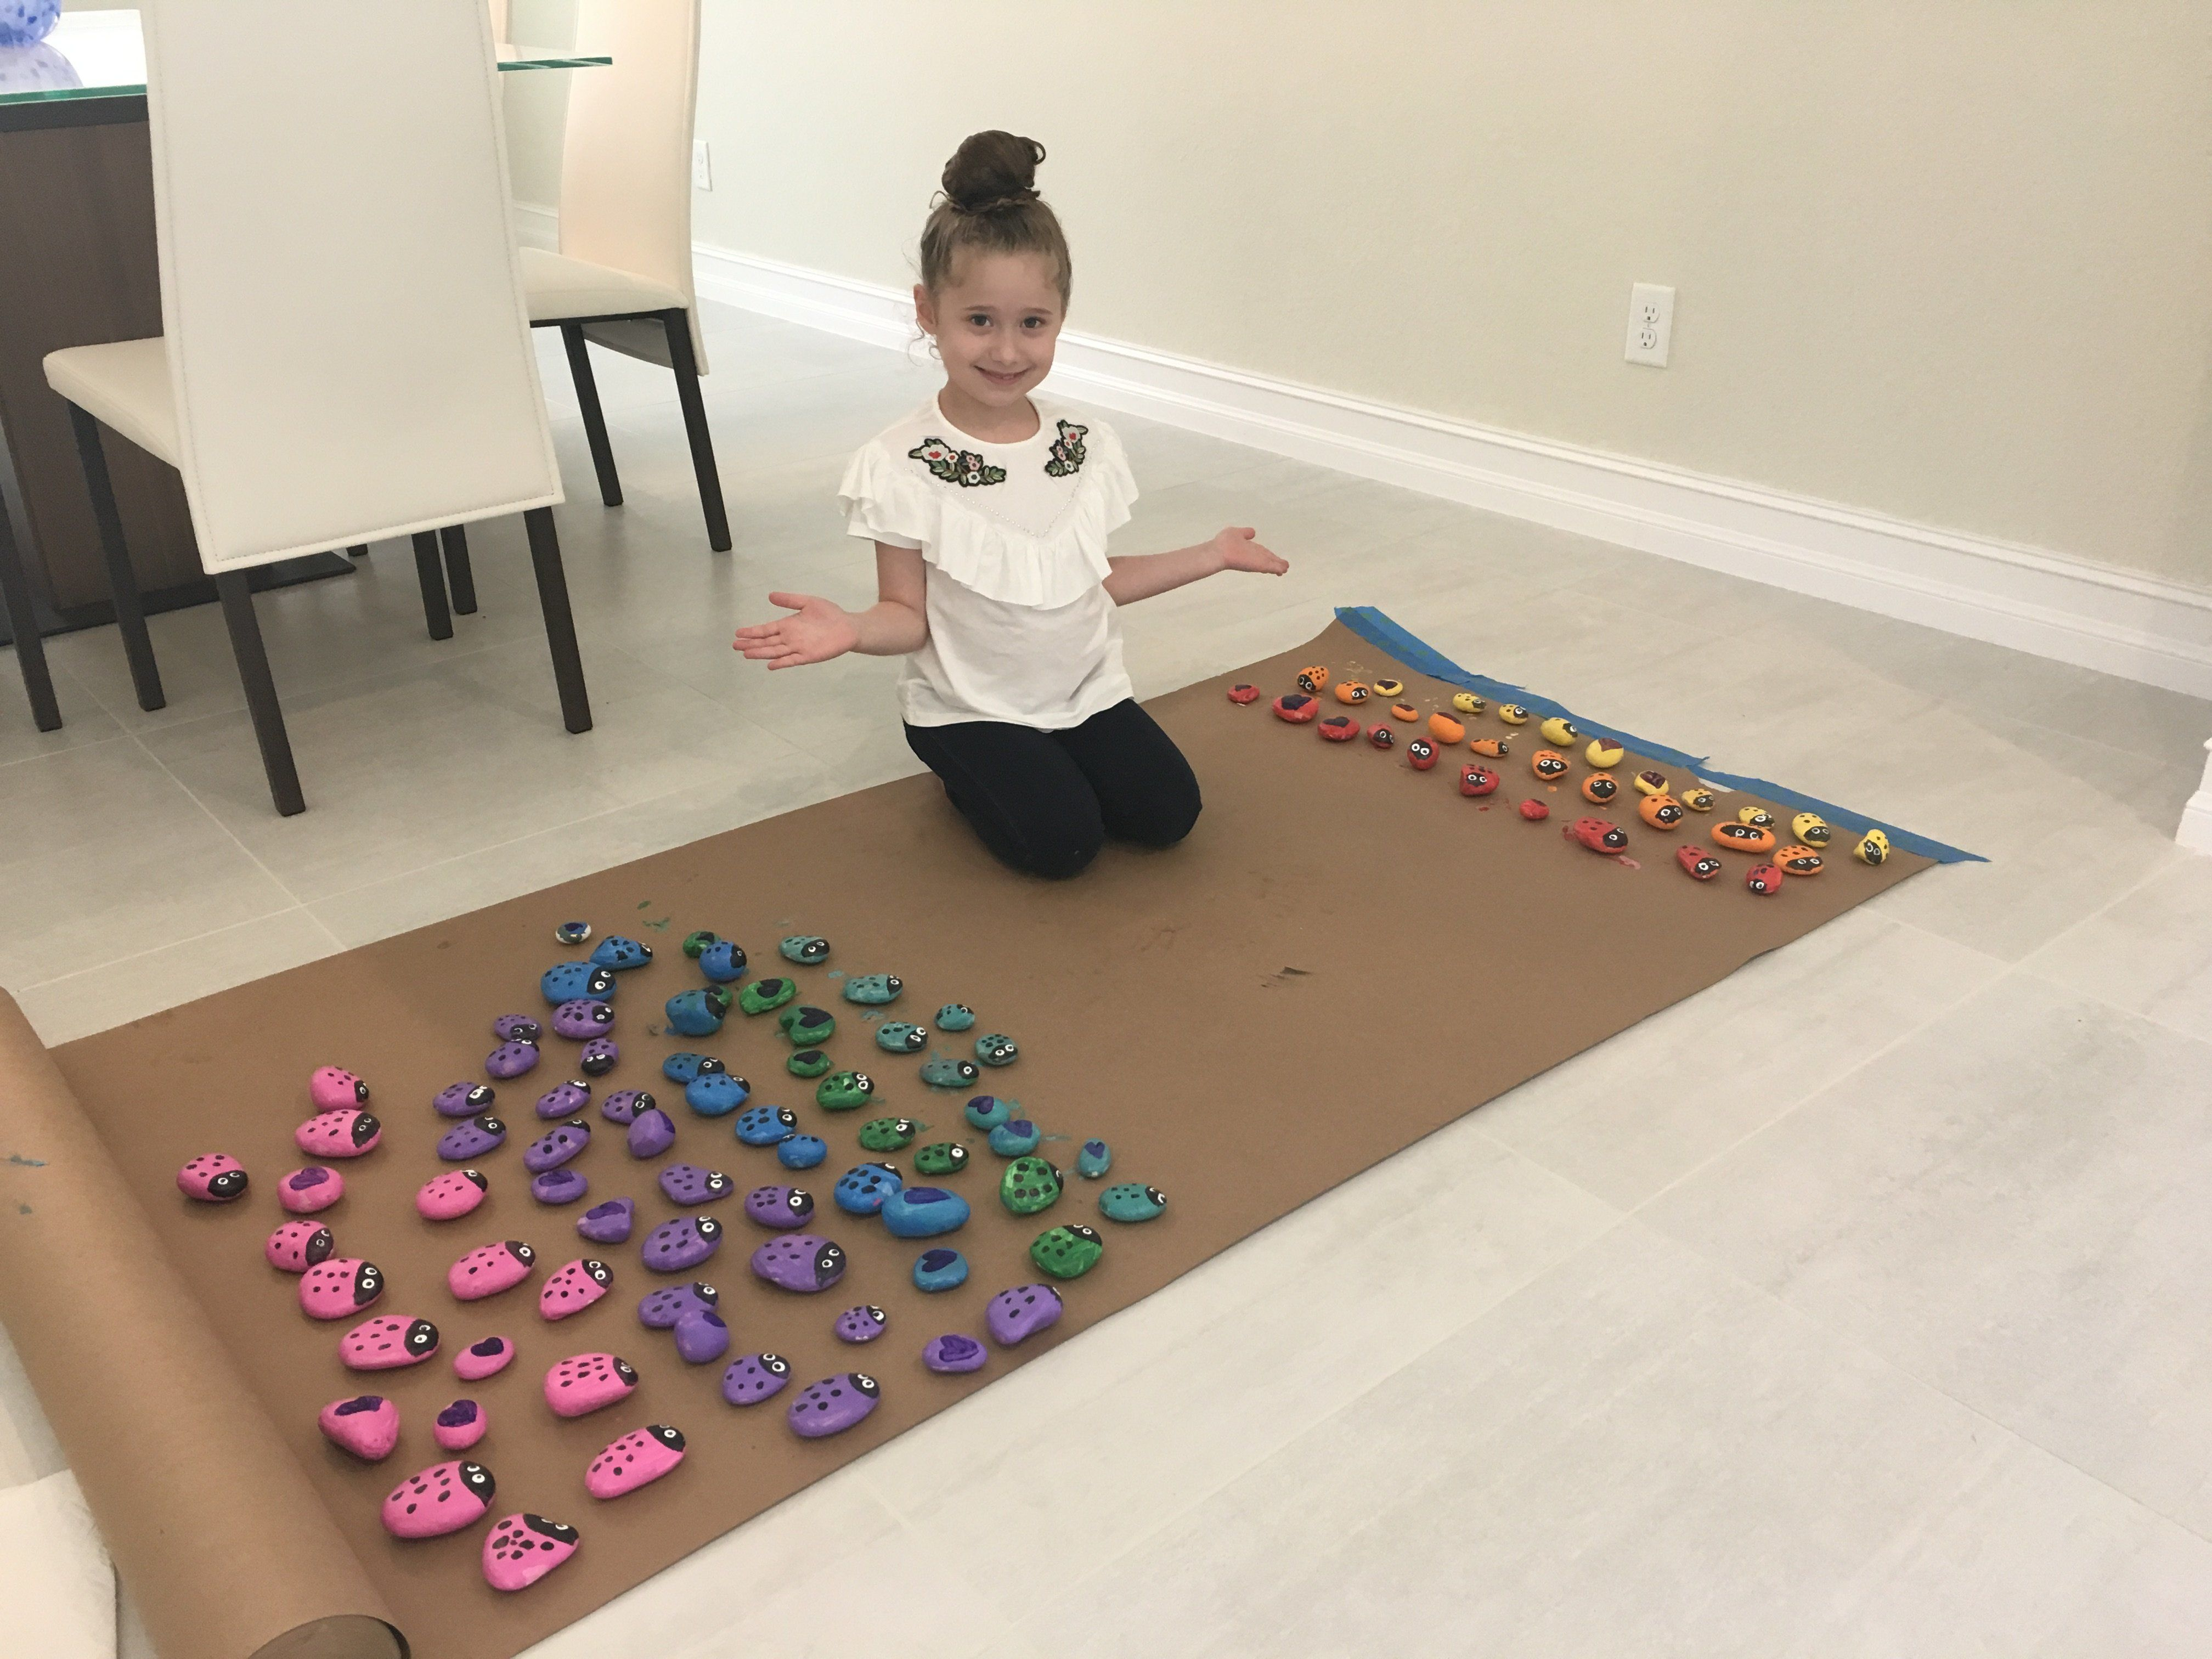 """Ayel's mom said the 6-year-old has painted """"hundreds of rocks"""" for her project."""